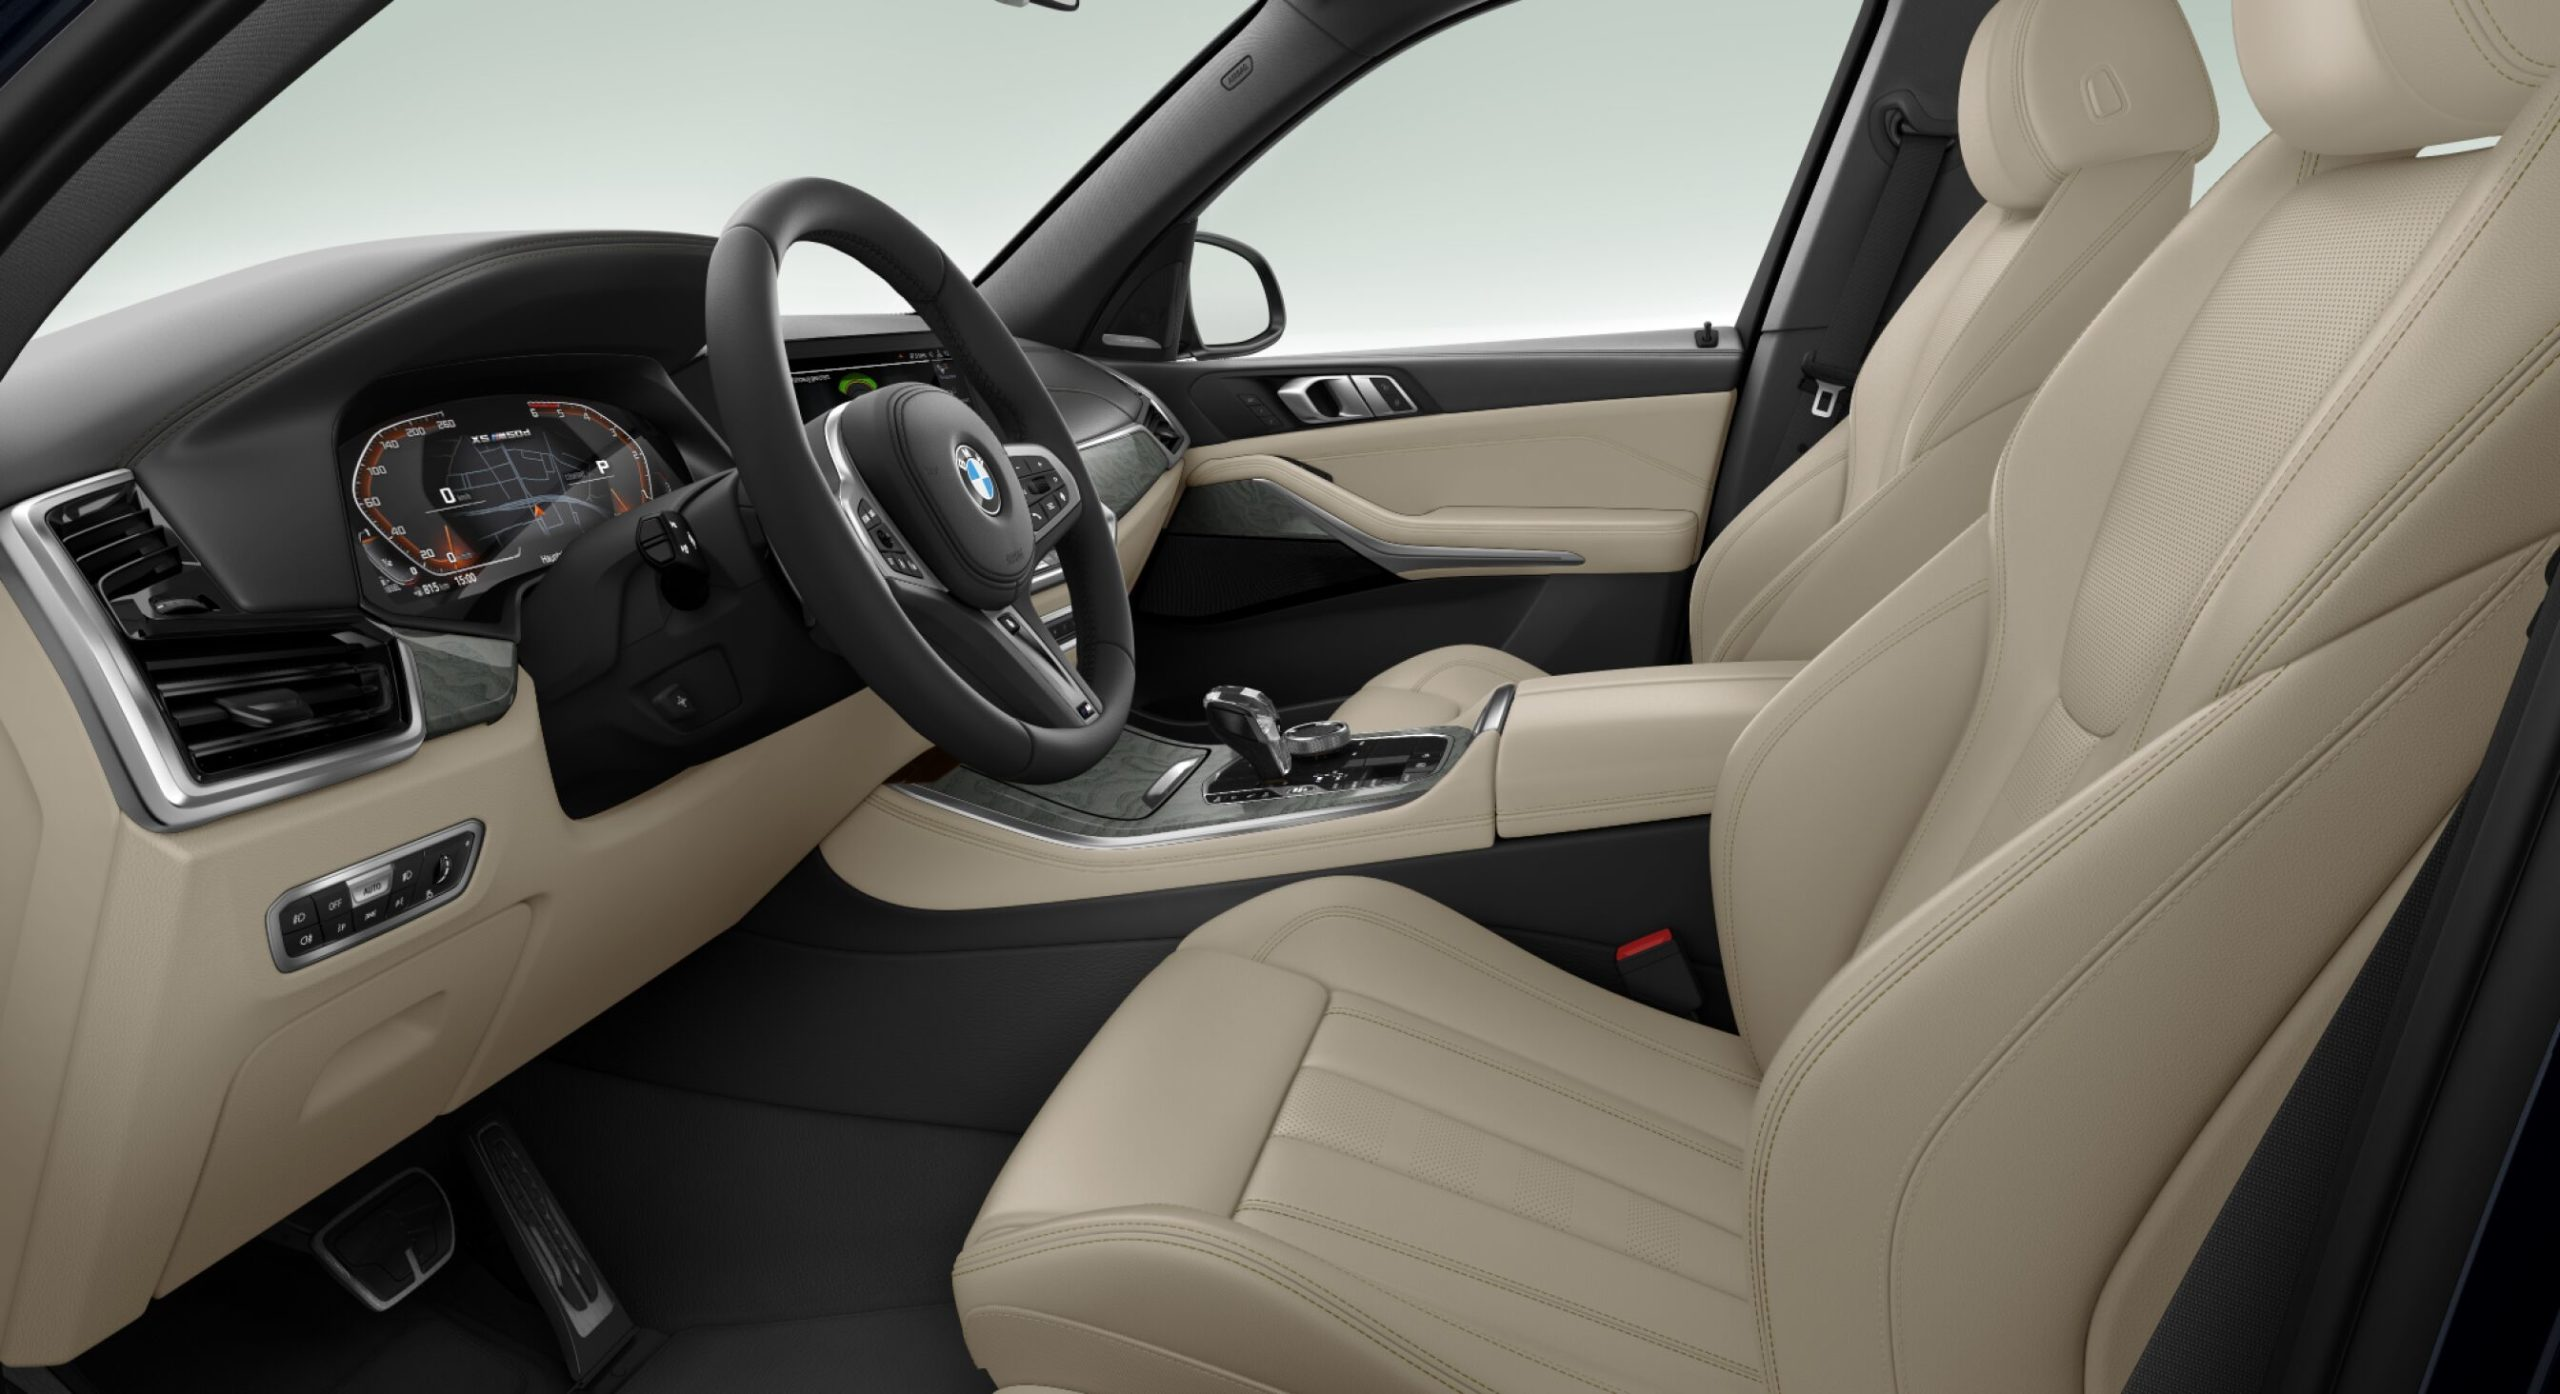 New Bmw Individual Leathers And Trims Added To X5 X6 And X7